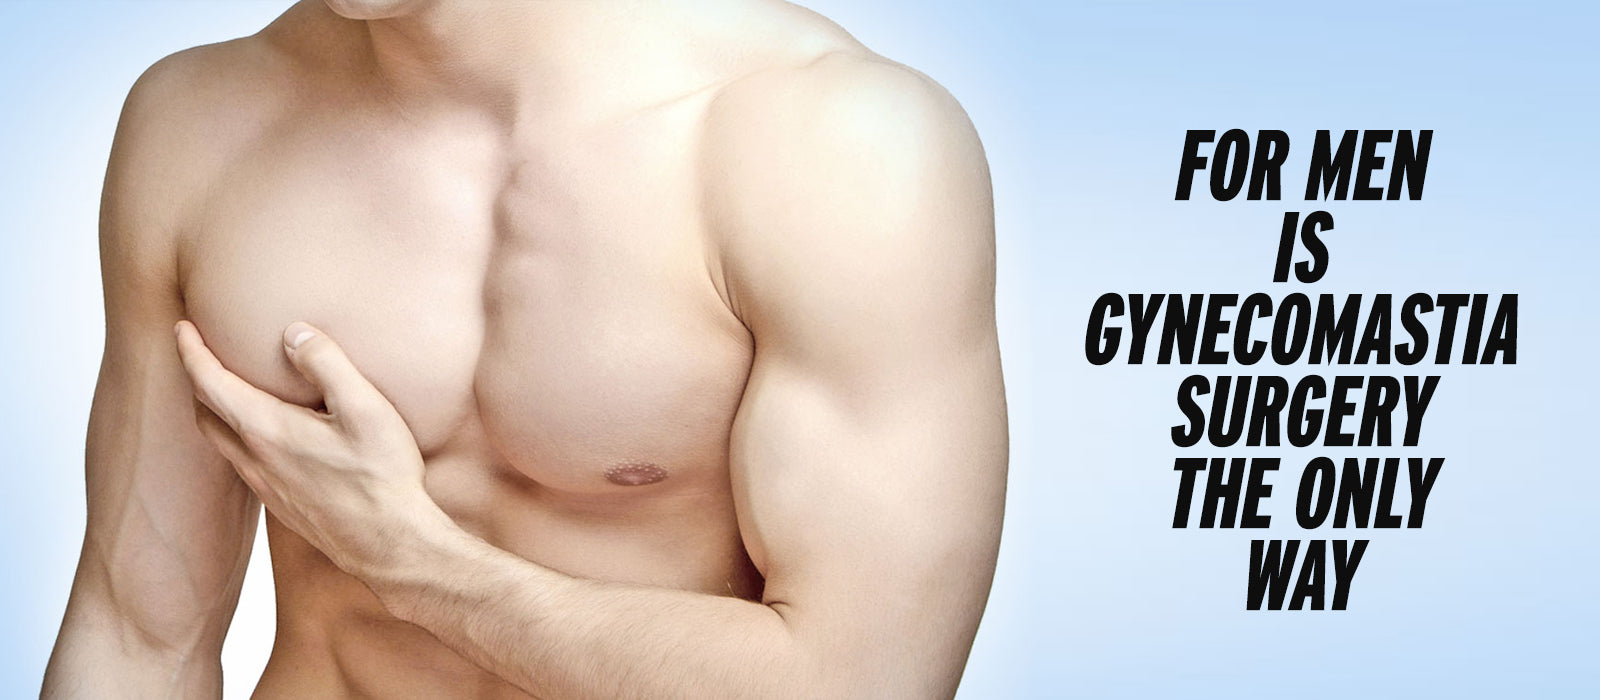 For Men Is Gynecomastia Surgery The Only Way